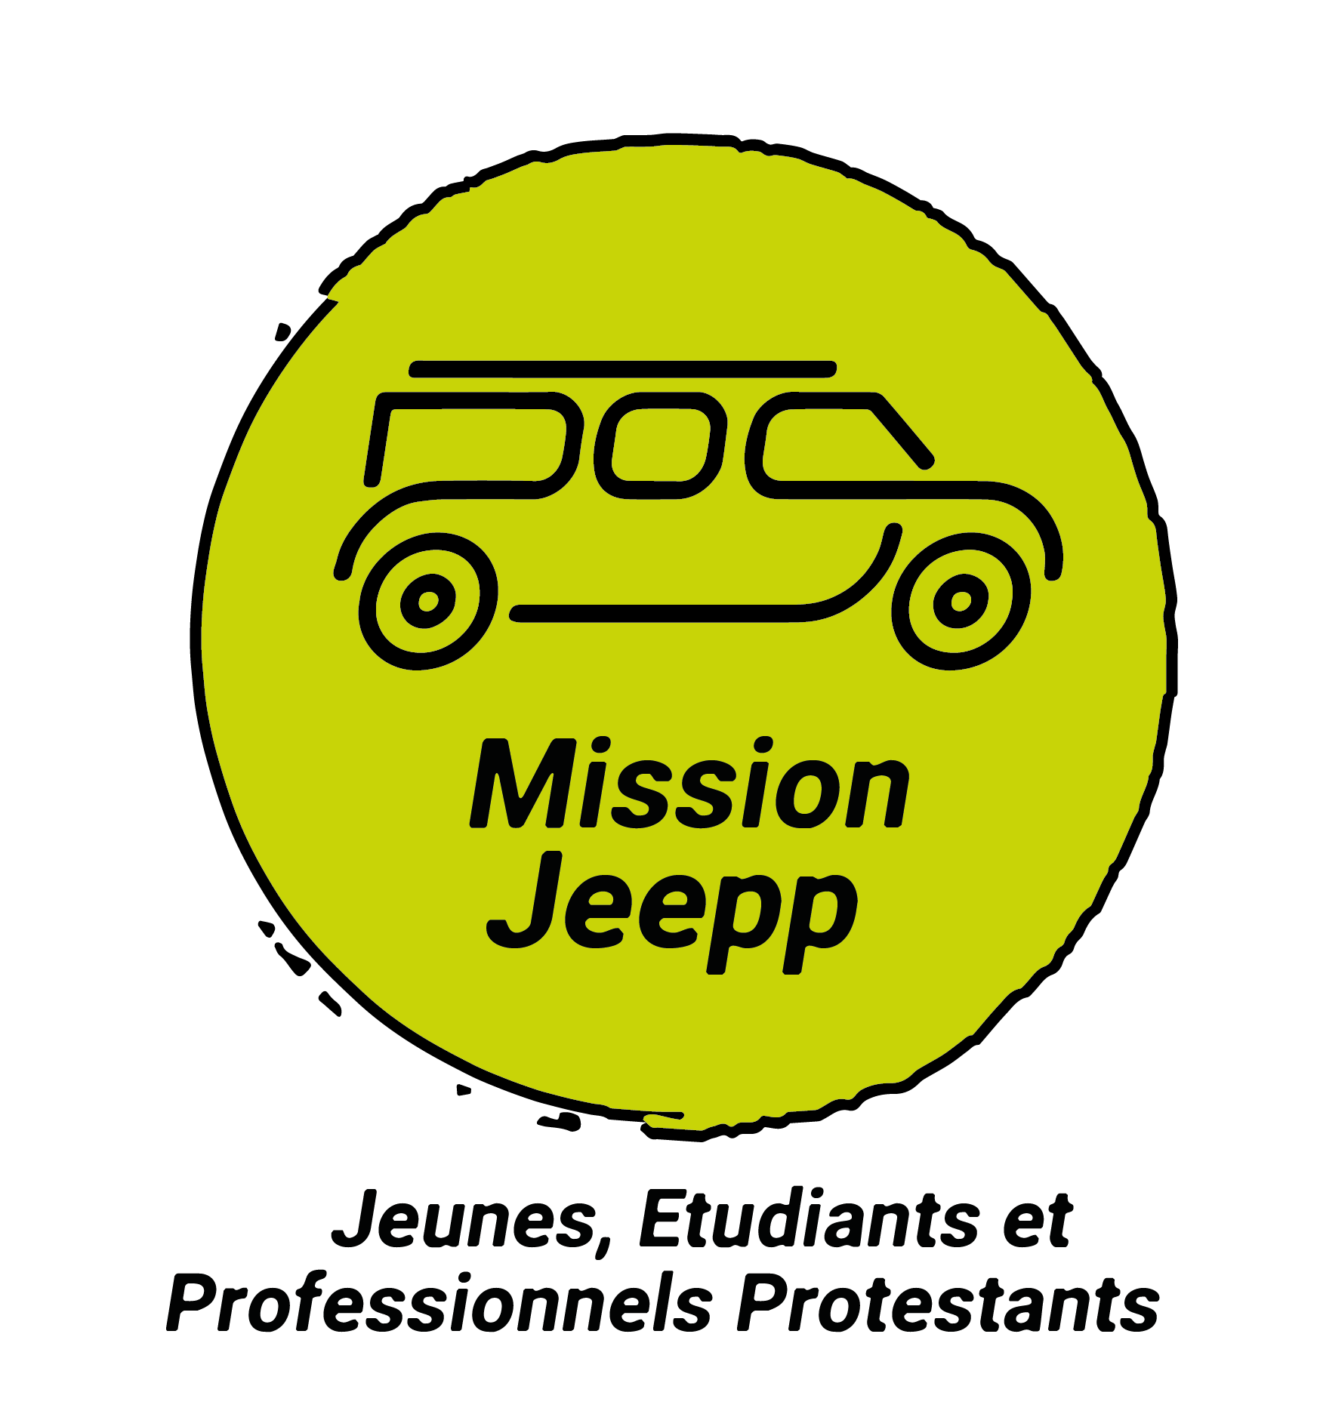 Mission Jeepp